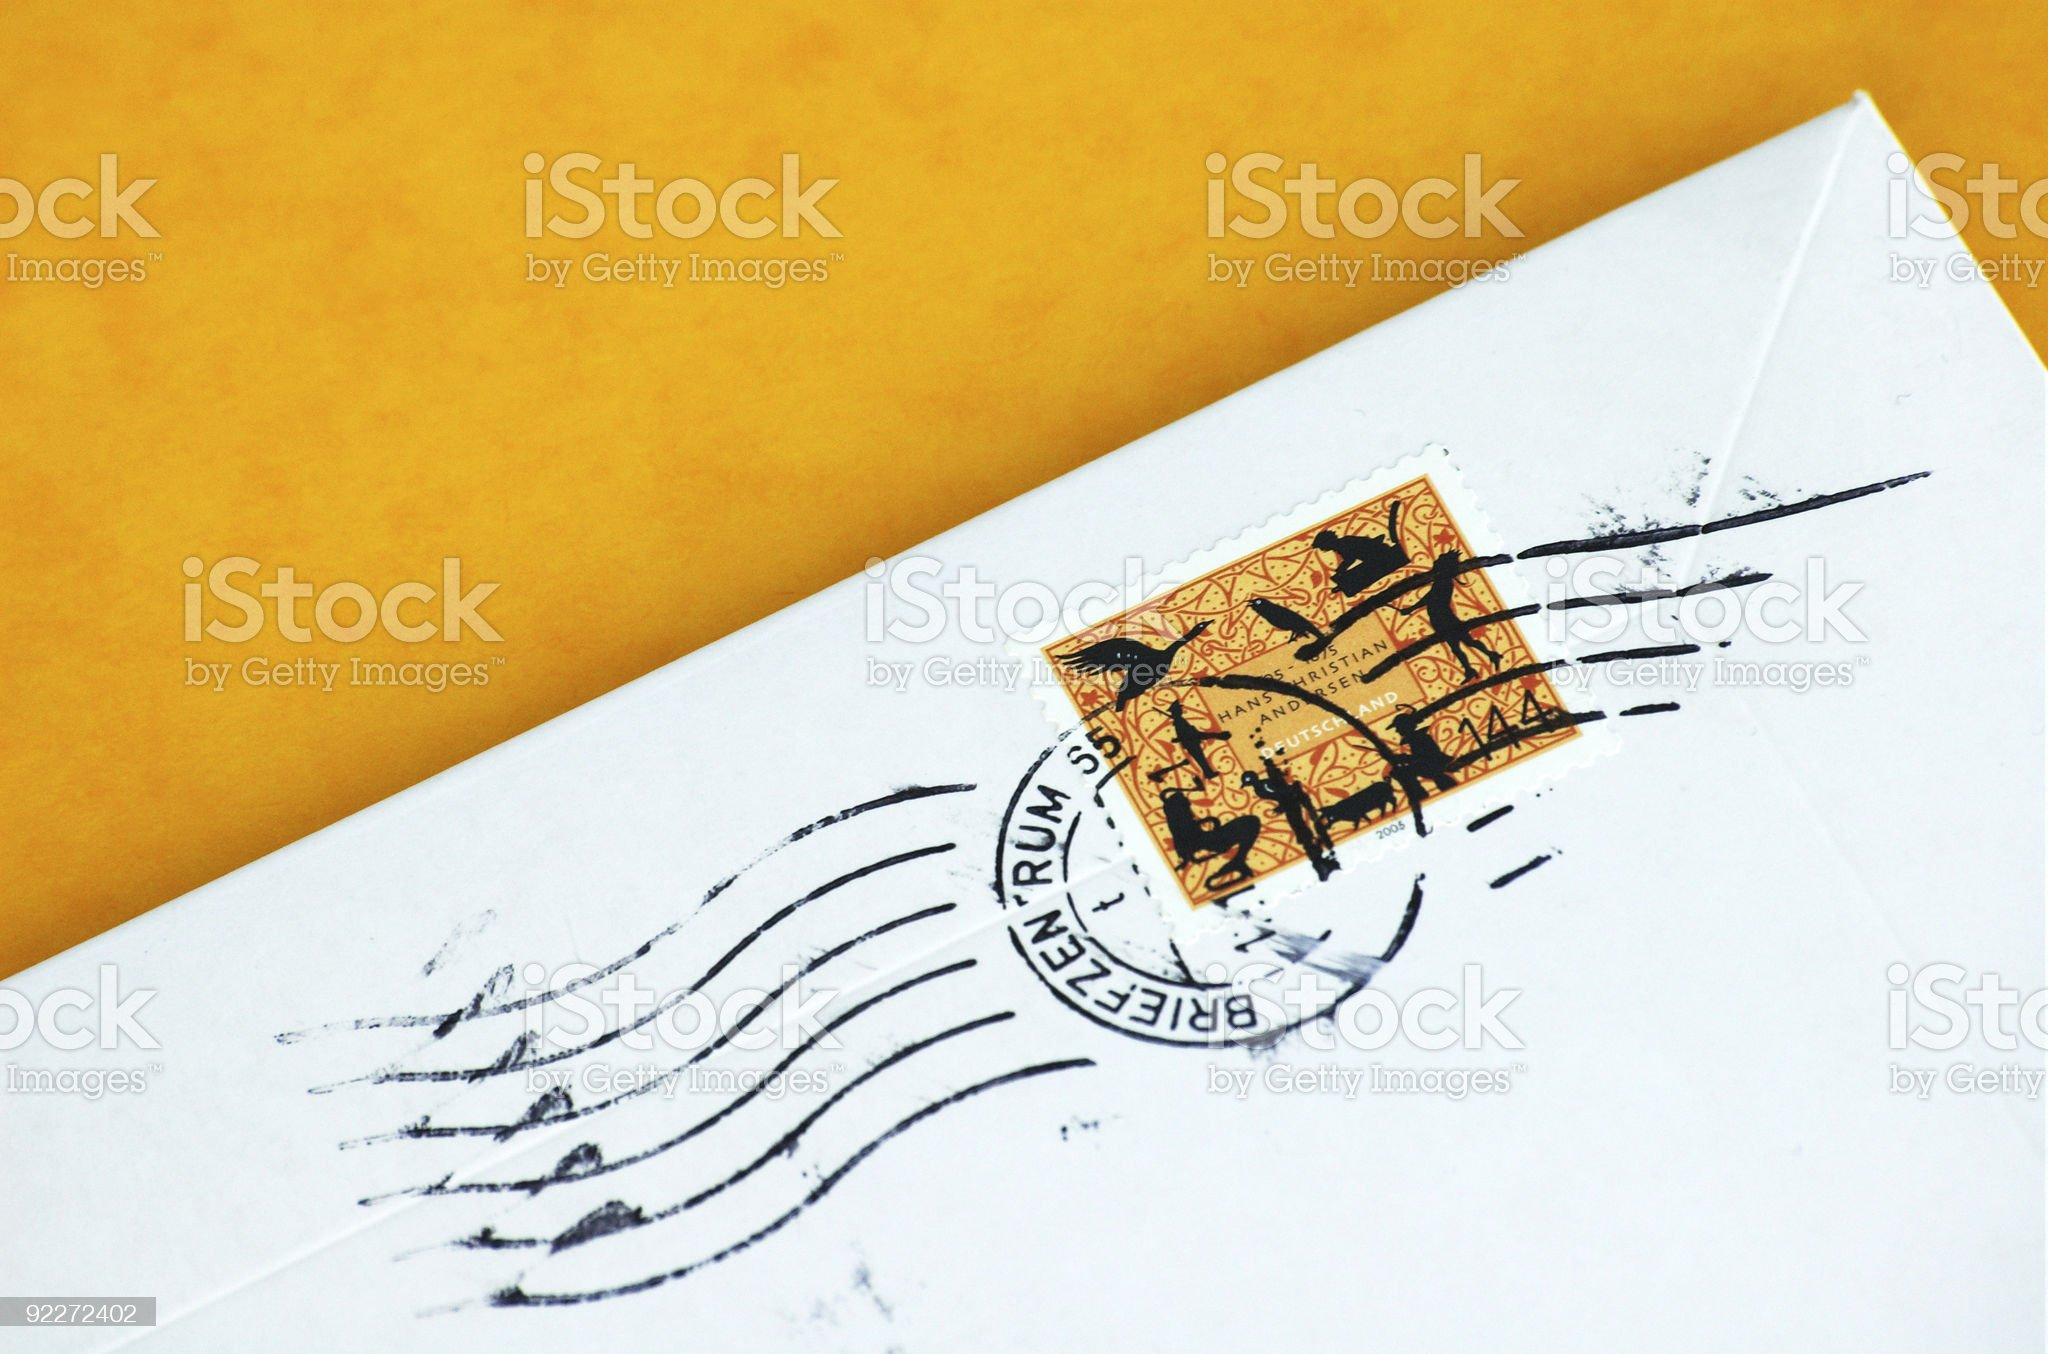 Postage Stamp royalty-free stock photo